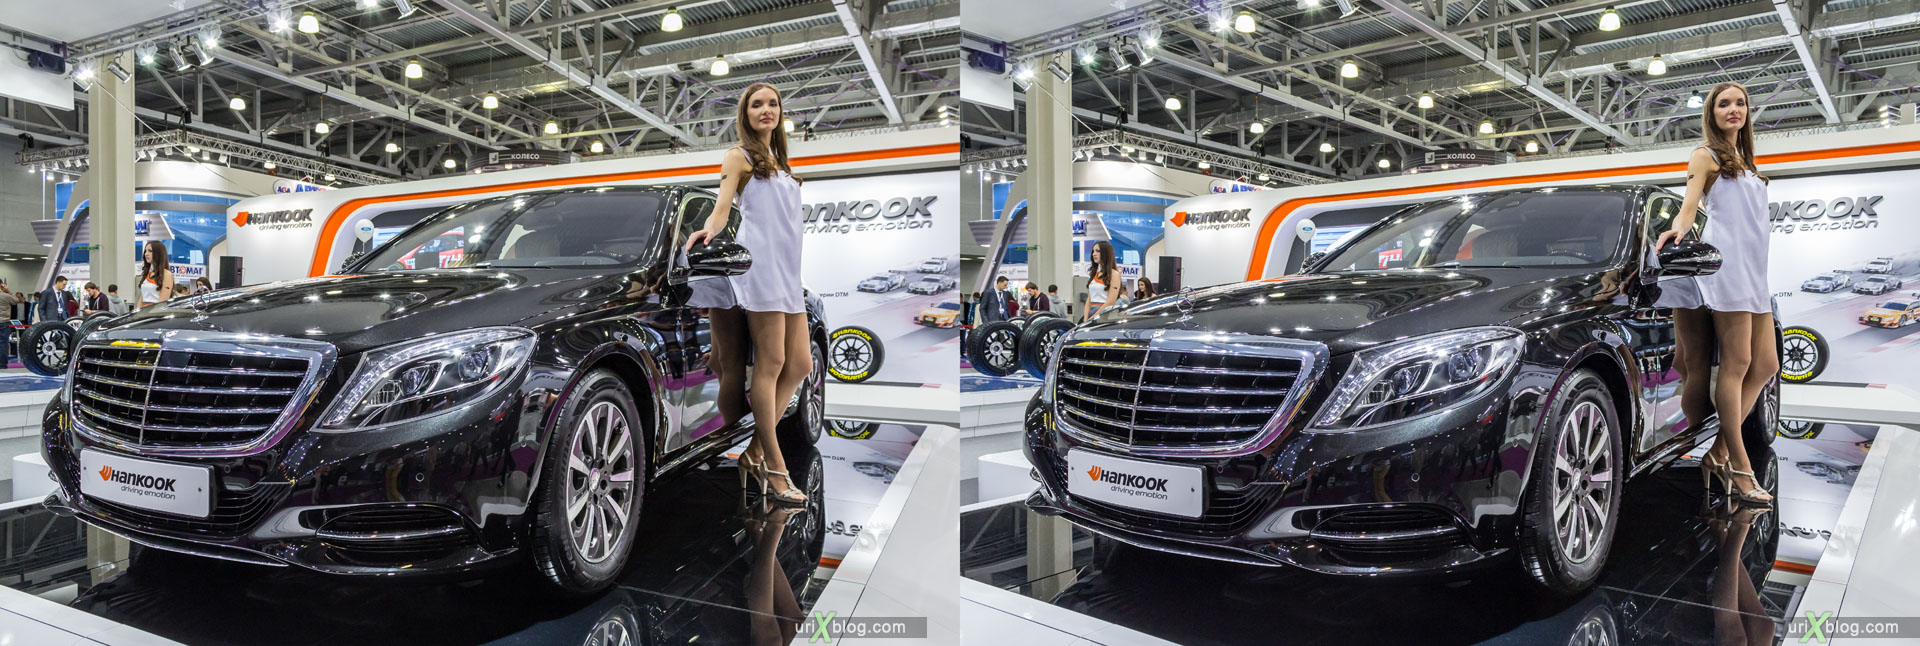 Mercedes-Benz **, Moscow International Automobile Salon 2014, MIAS 2014, girls, models, Crocus Expo, Moscow, Russia, 3D, stereo pair, cross-eyed, crossview, cross view stereo pair, stereoscopic, 2014